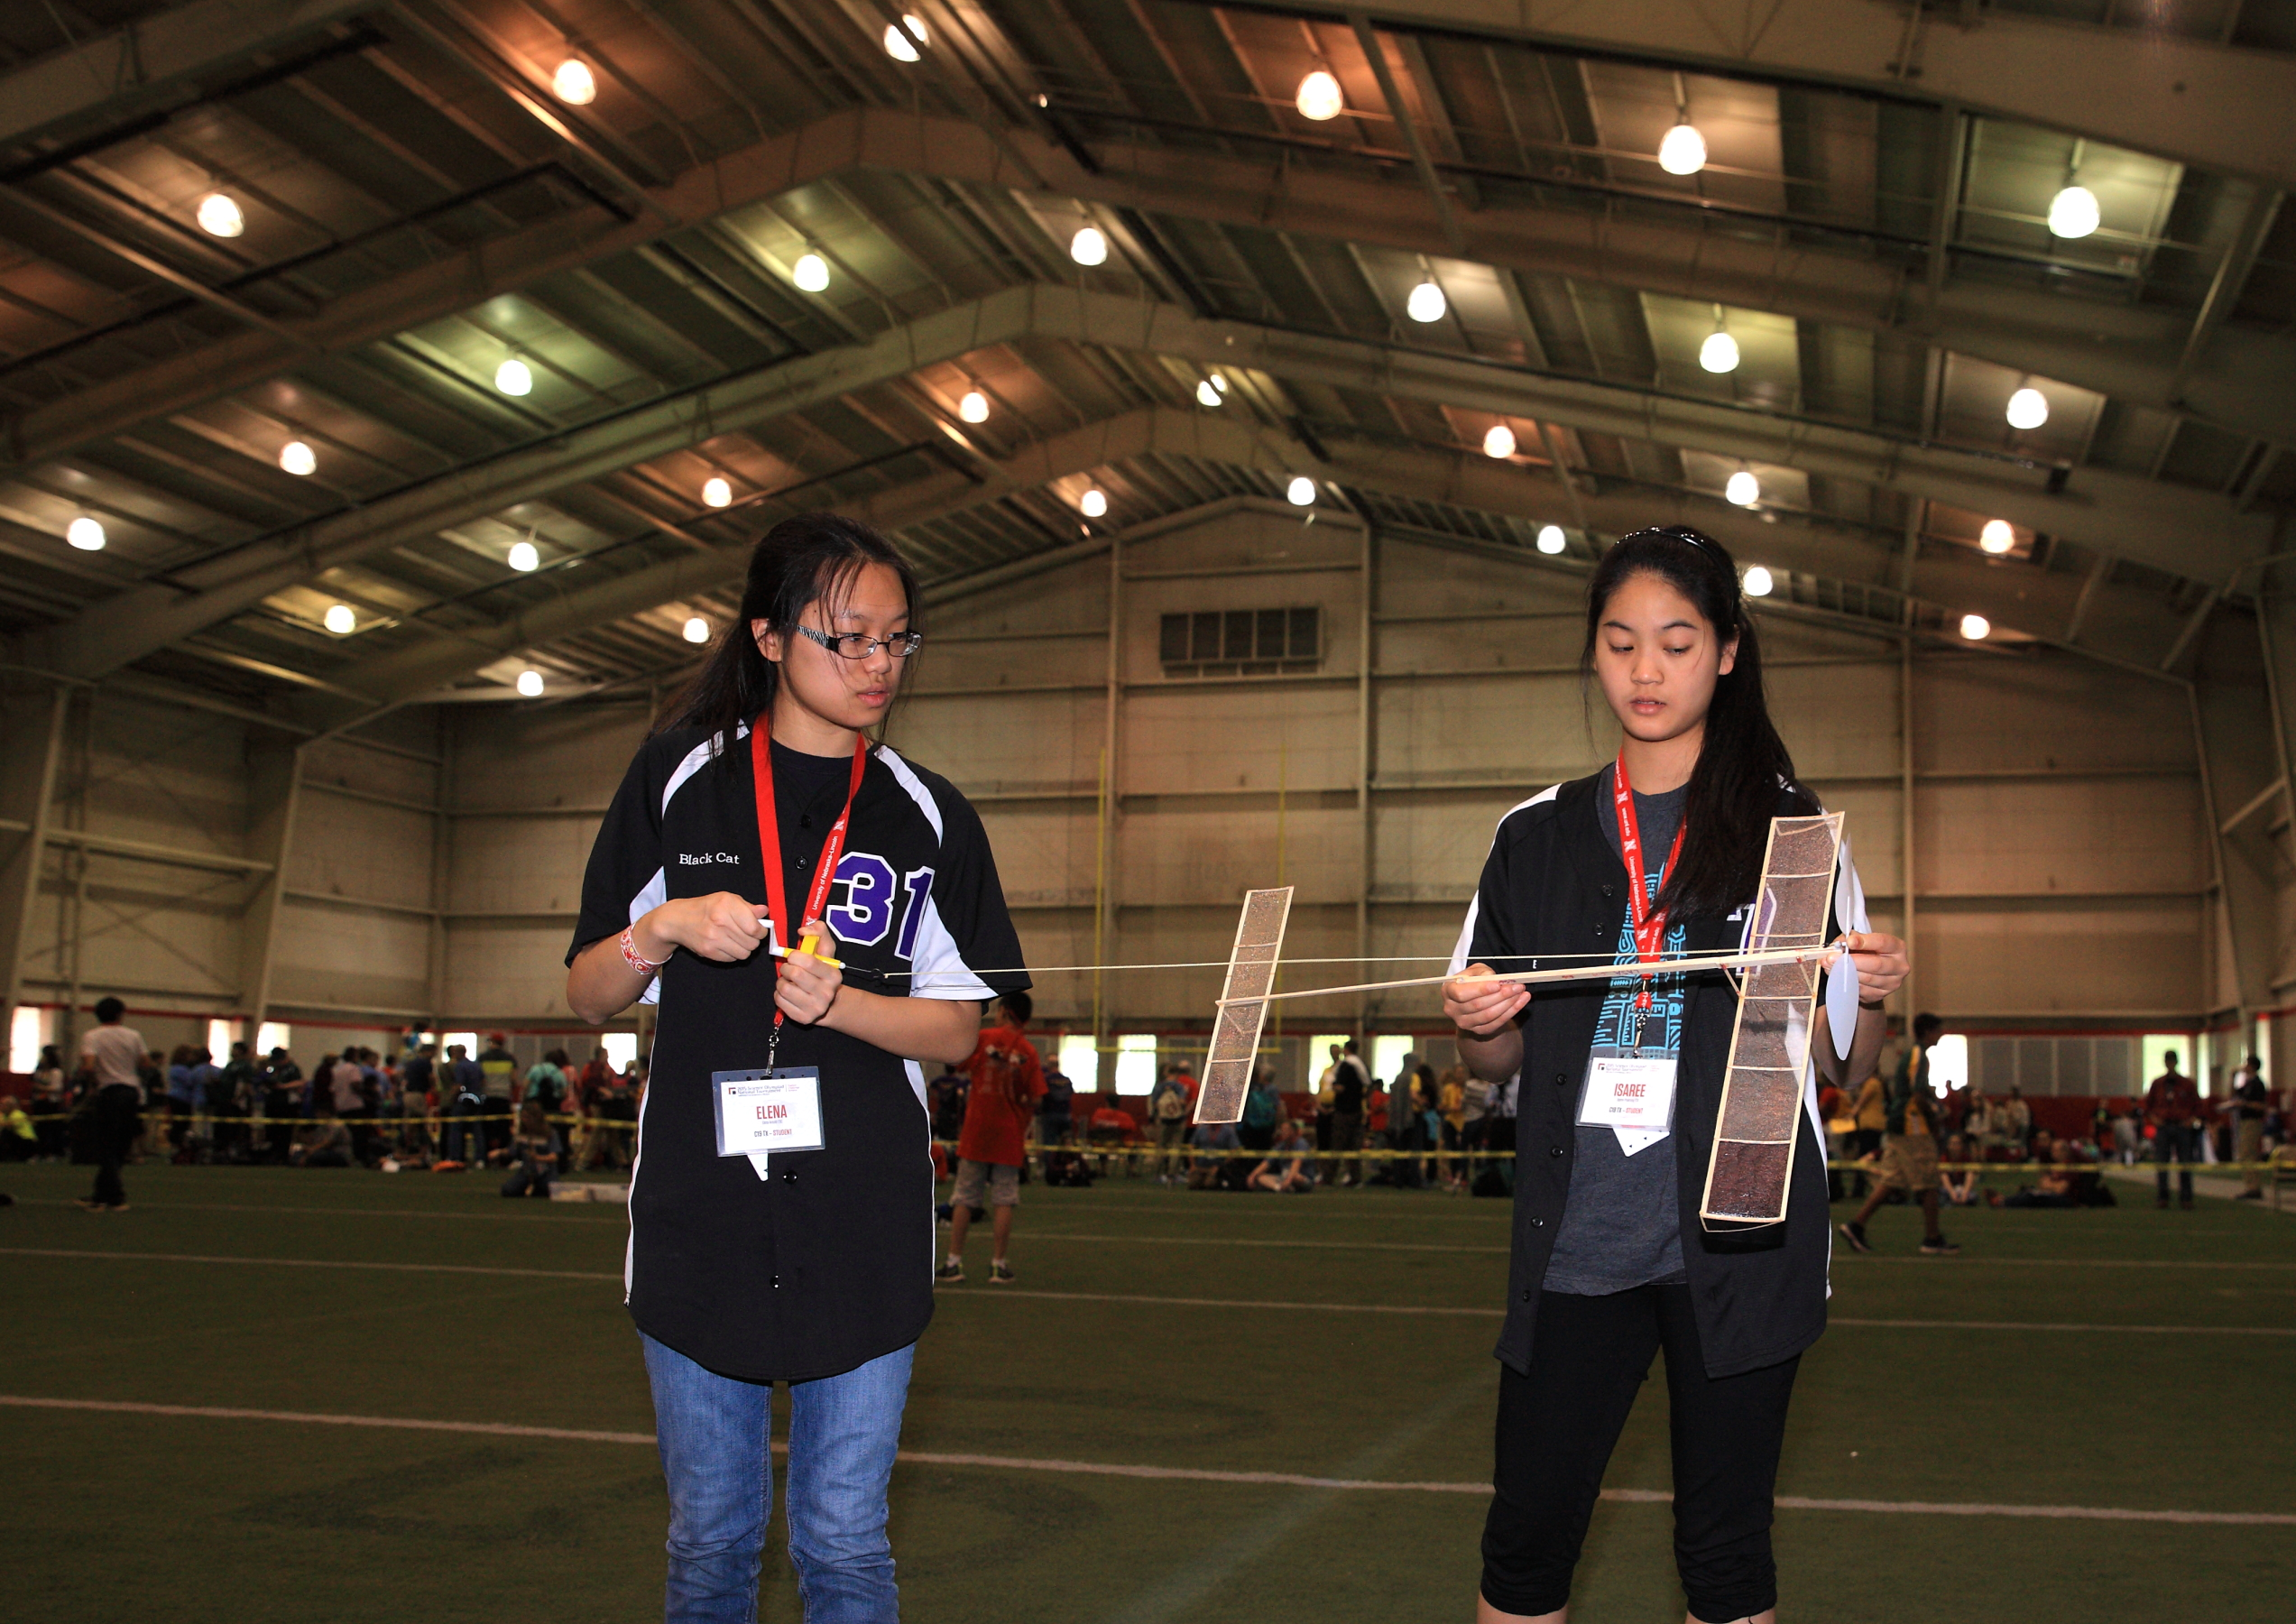 Wright Stuff at the 2015 Science Olympiad National Tournament